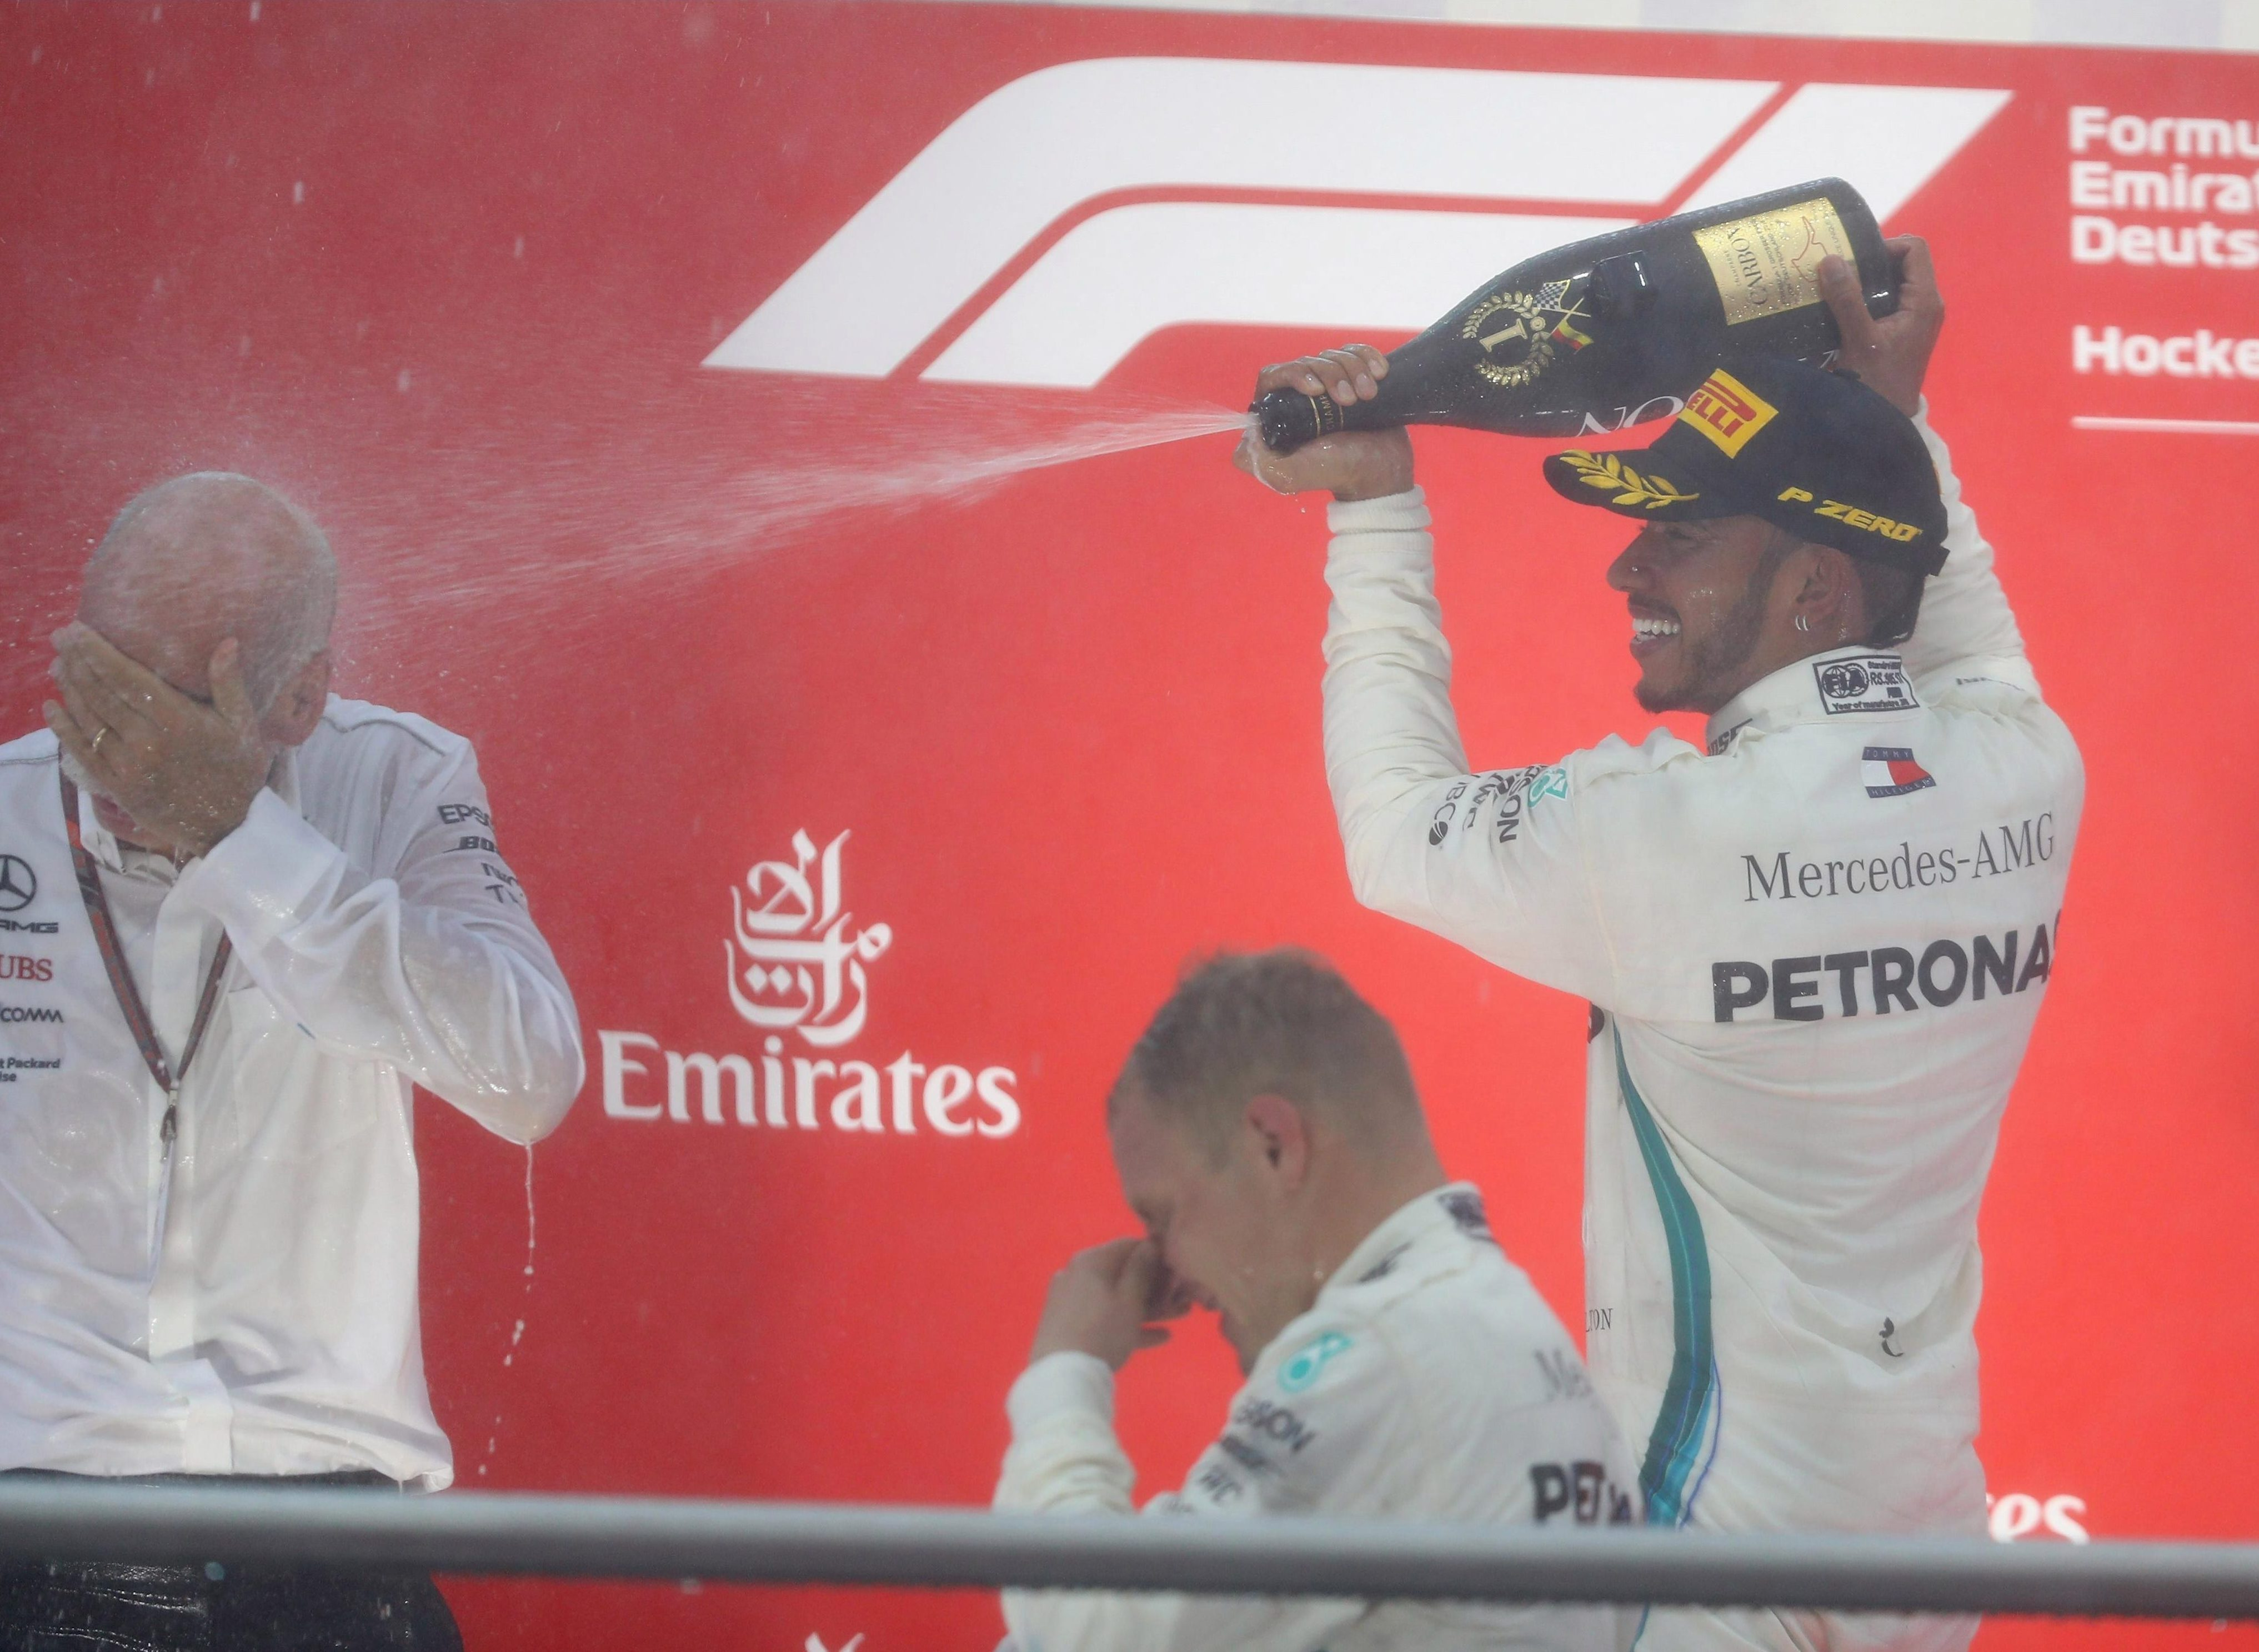 Hamilton celebrated his fourth win on German tarmac in style